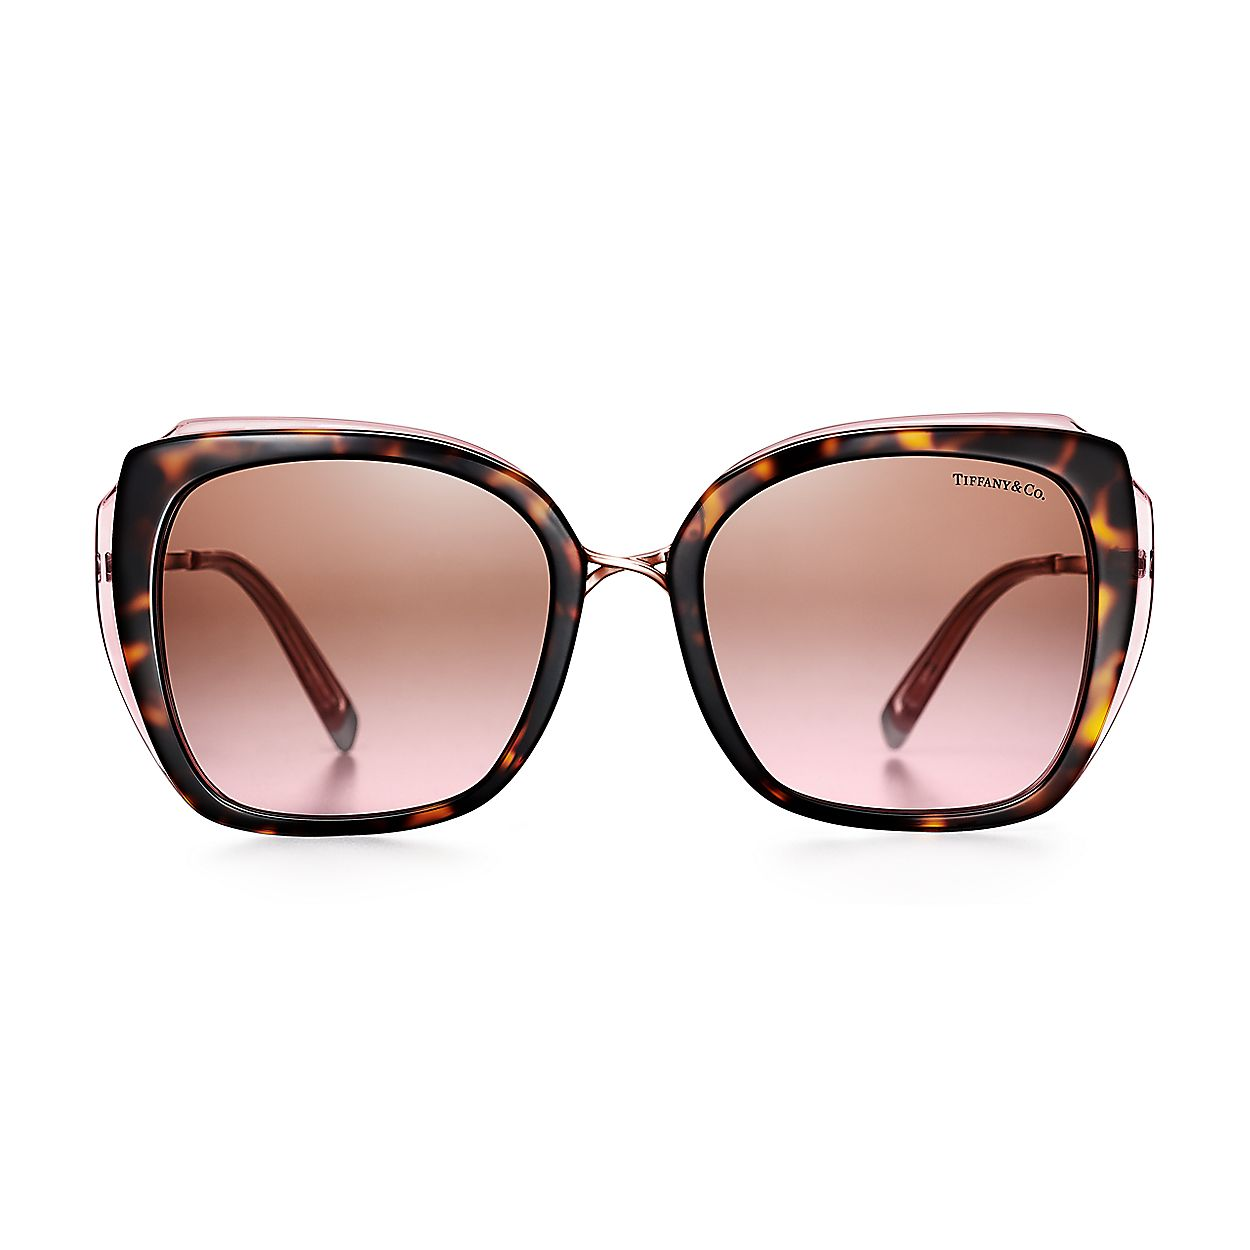 2bd2d7b035c8 Tiffany Infinity square sunglasses in tortoise and light pink ...